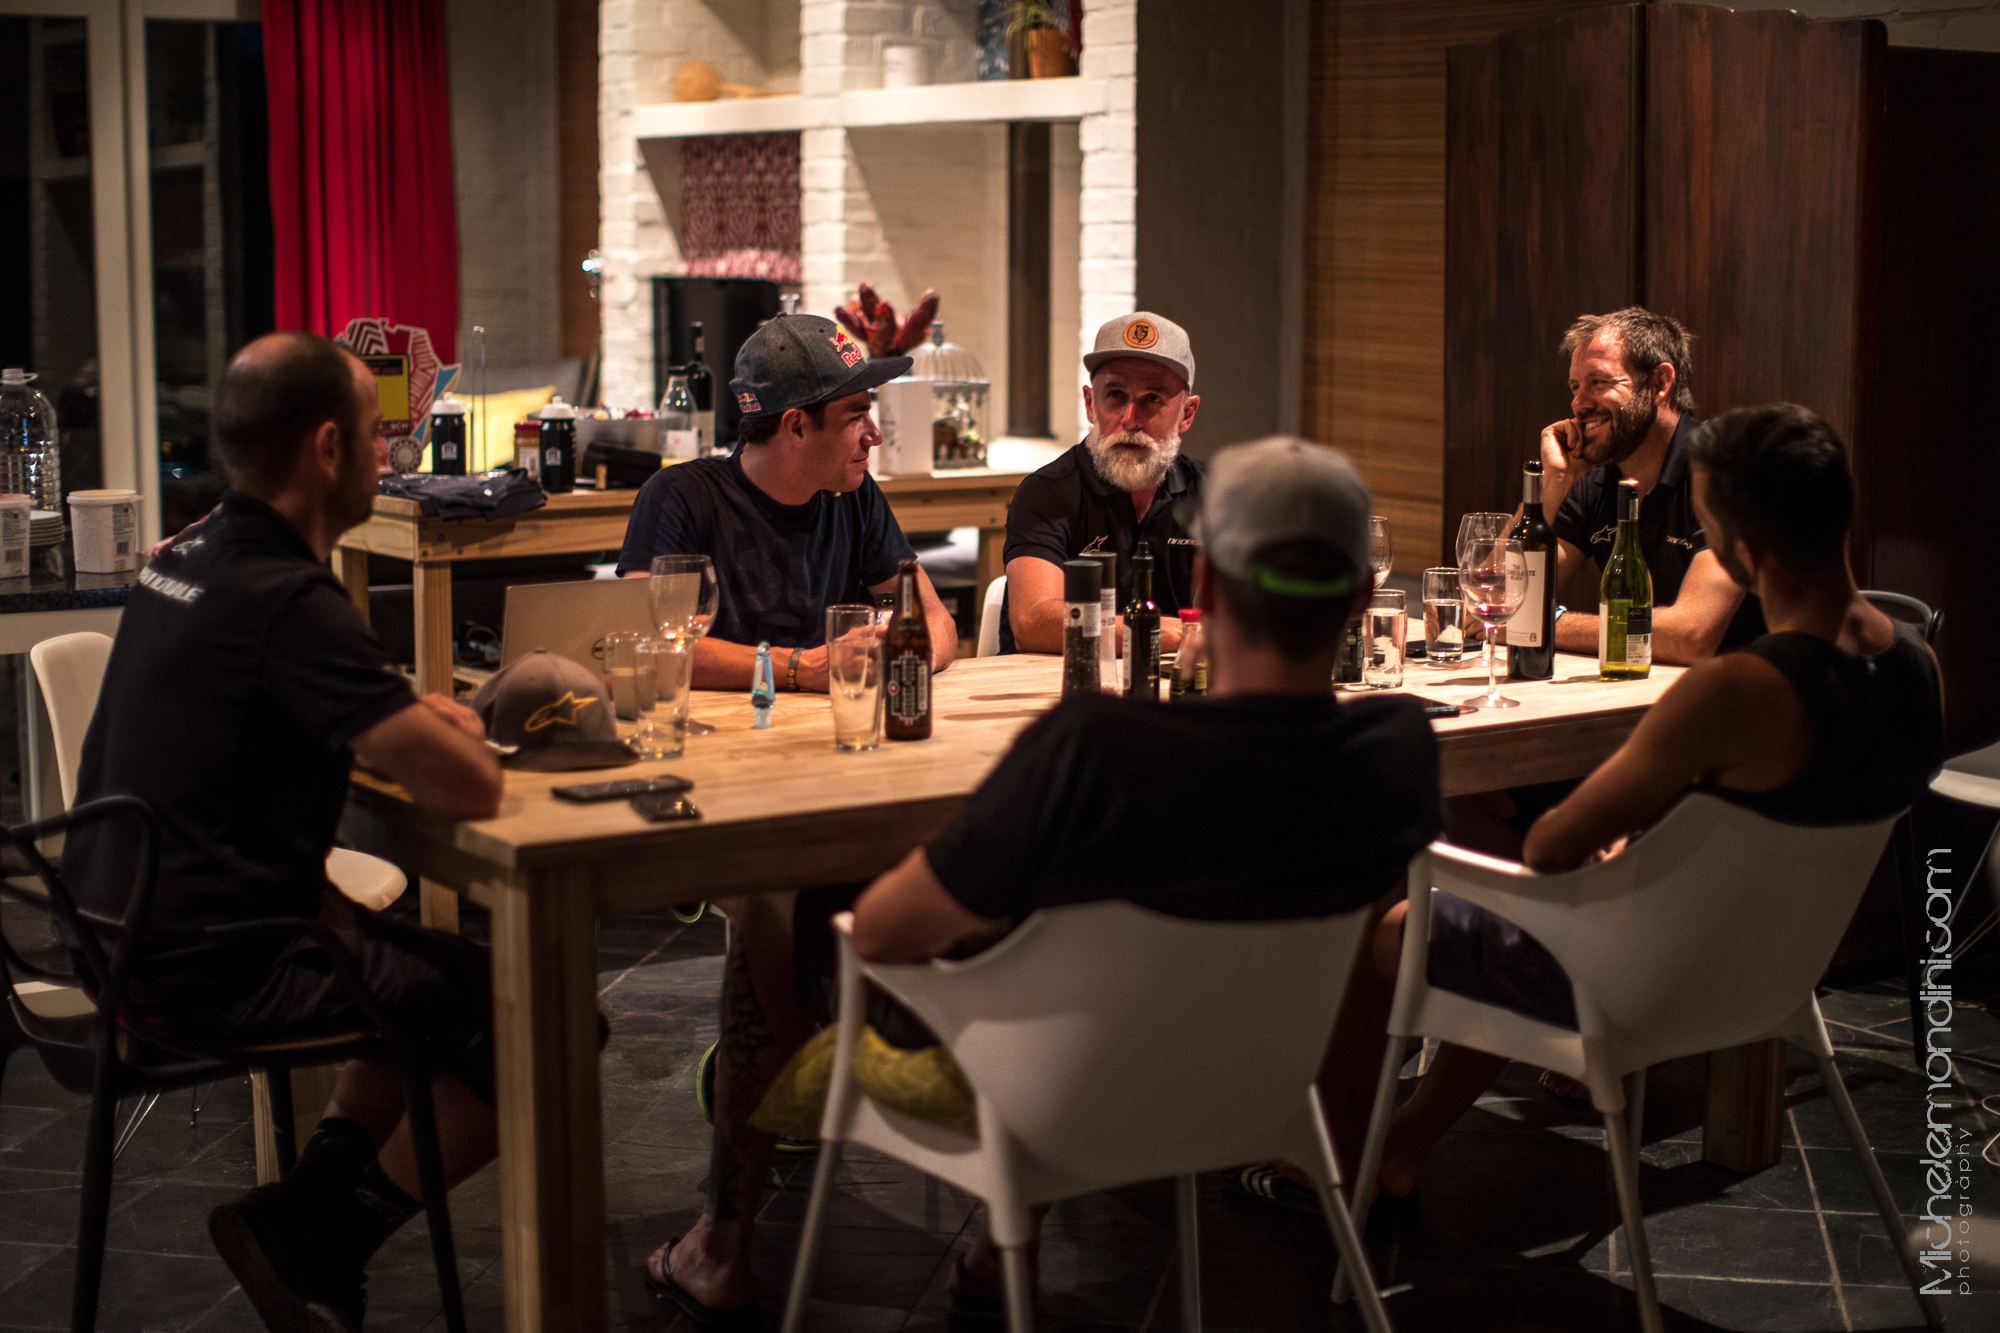 Team dinner with a lot of speeches, laughs and just a few glasses of wine - Ph: Michele Mondini